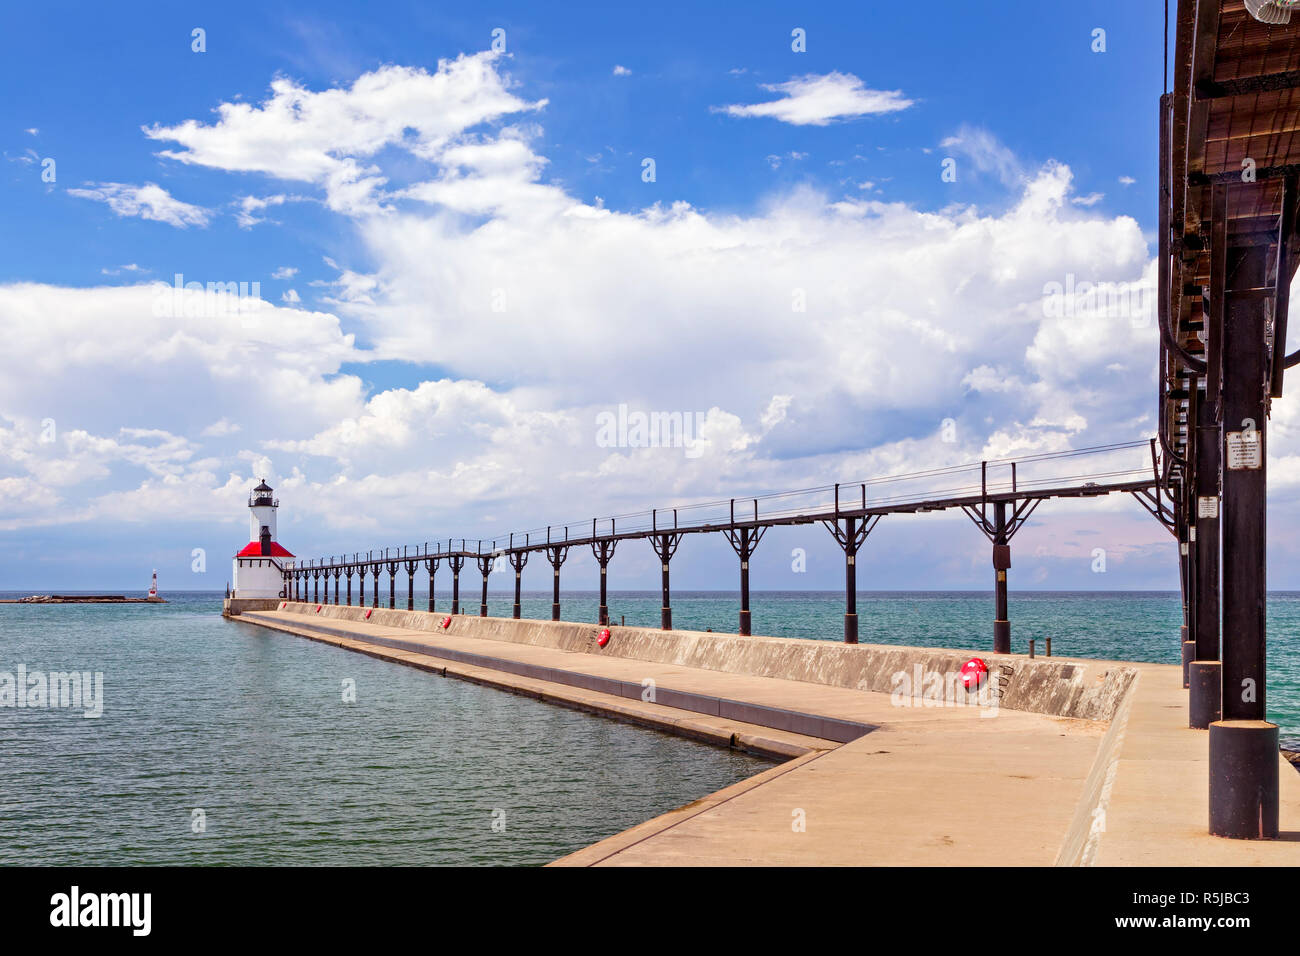 An elevated metal catwalk leads to the East Pierhead Lighthouse at Michigan City, Indiana on a partly cloudy summer afternoon. Stock Photo